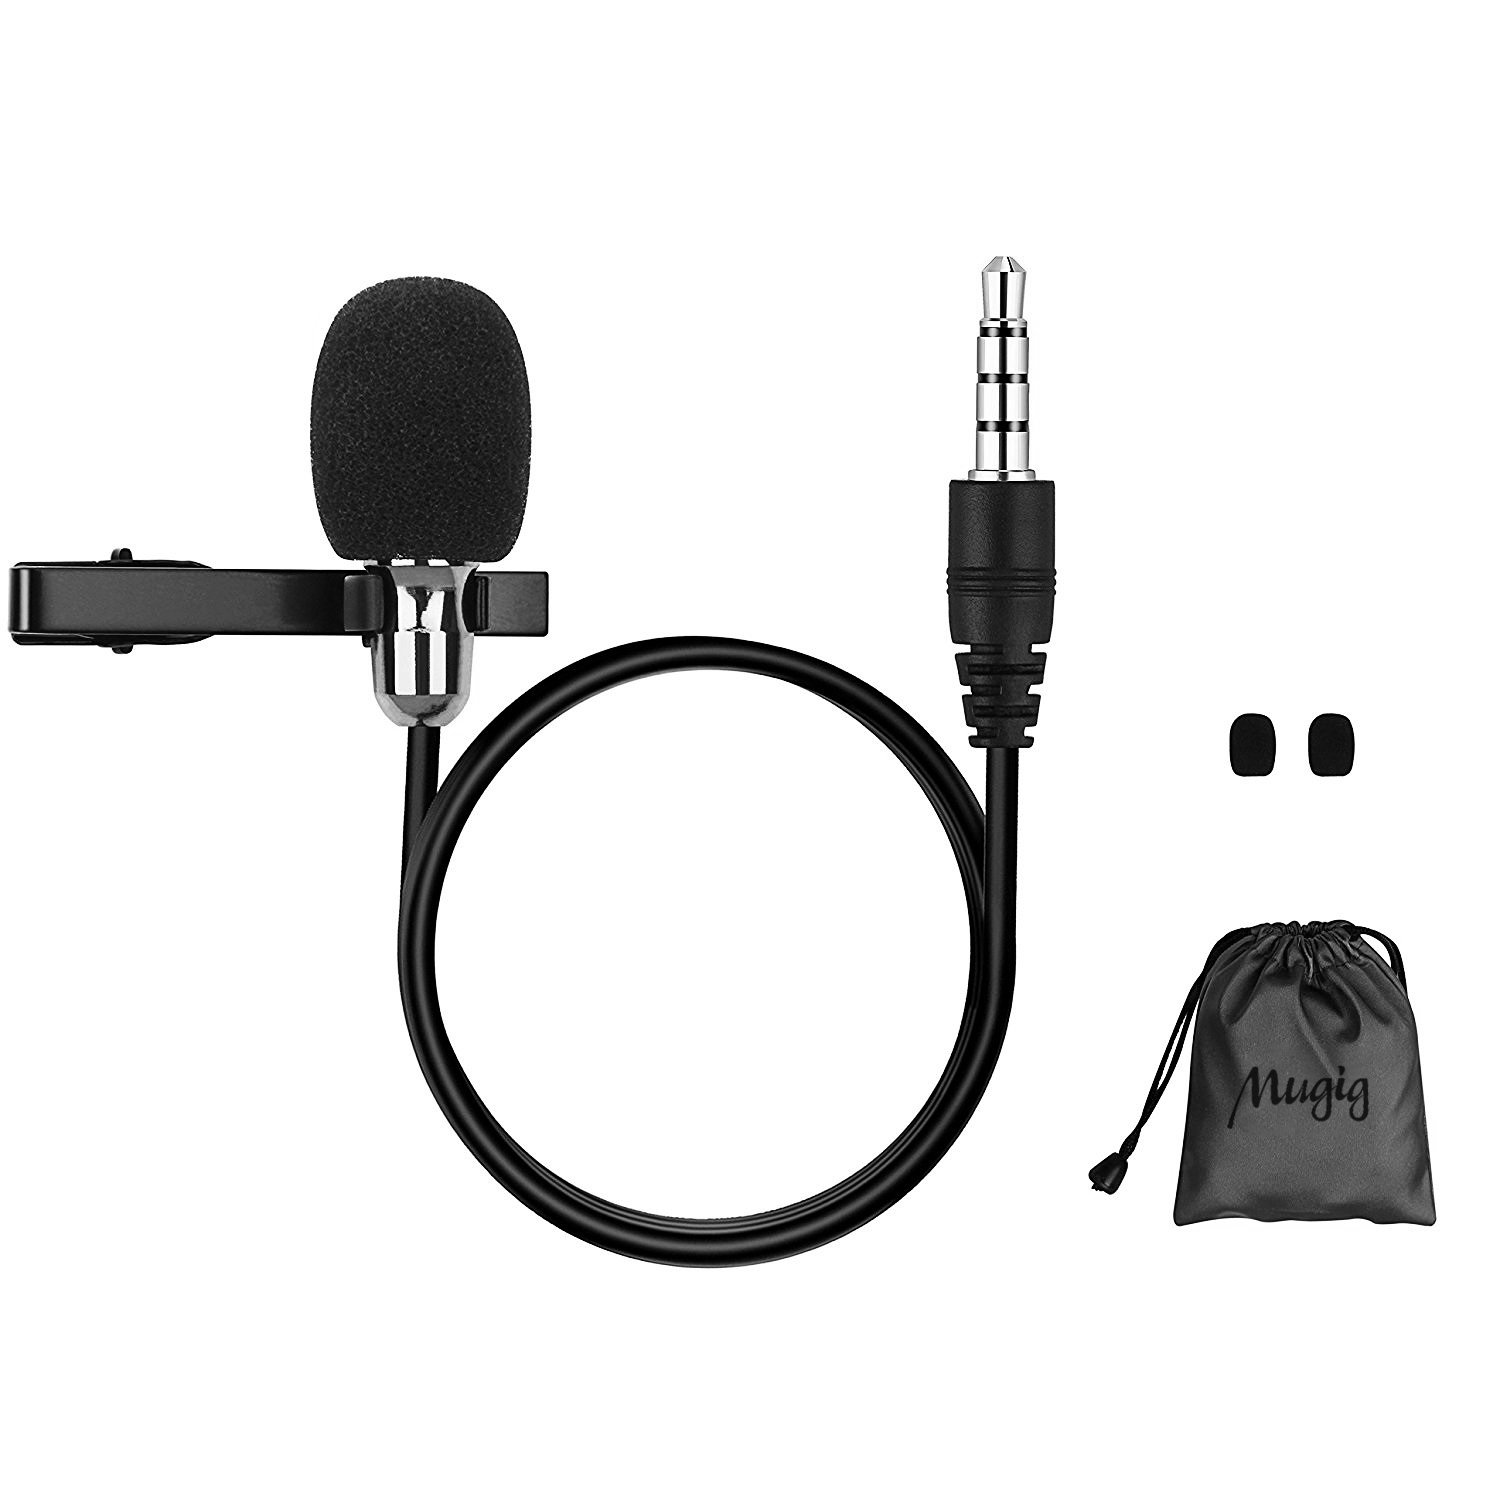 Mugig Lavalier Microphone  Mini Clip On Style Omnidirectional Lapel Condenser Mic for Smartphone and Other Mobile Devices